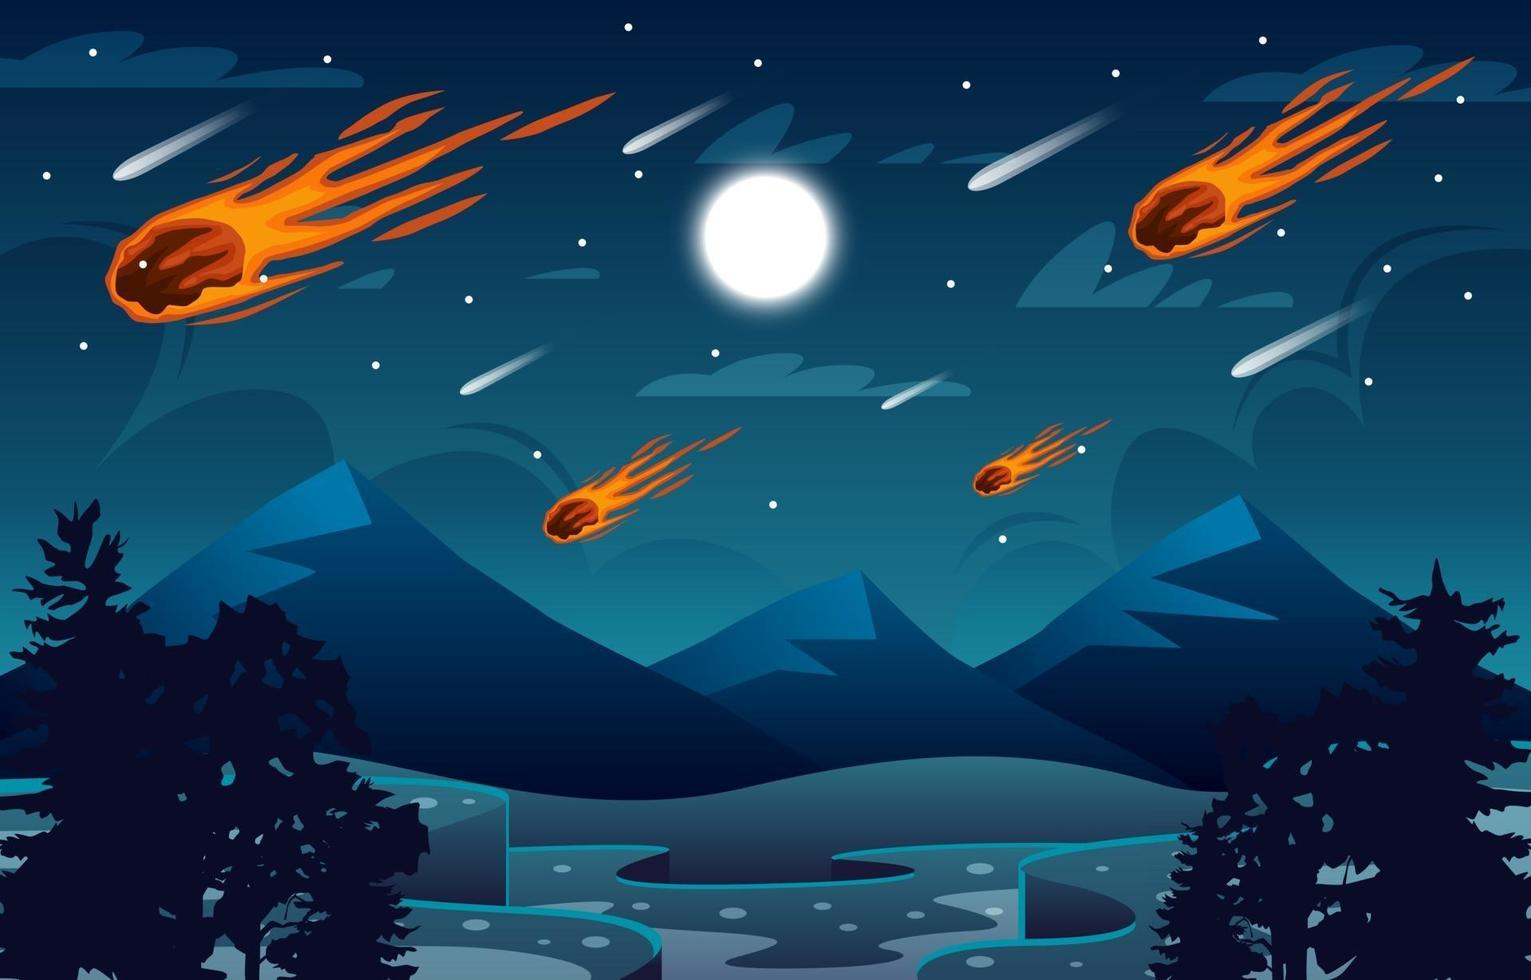 Meteor Over the Mountain Scenery Background vector